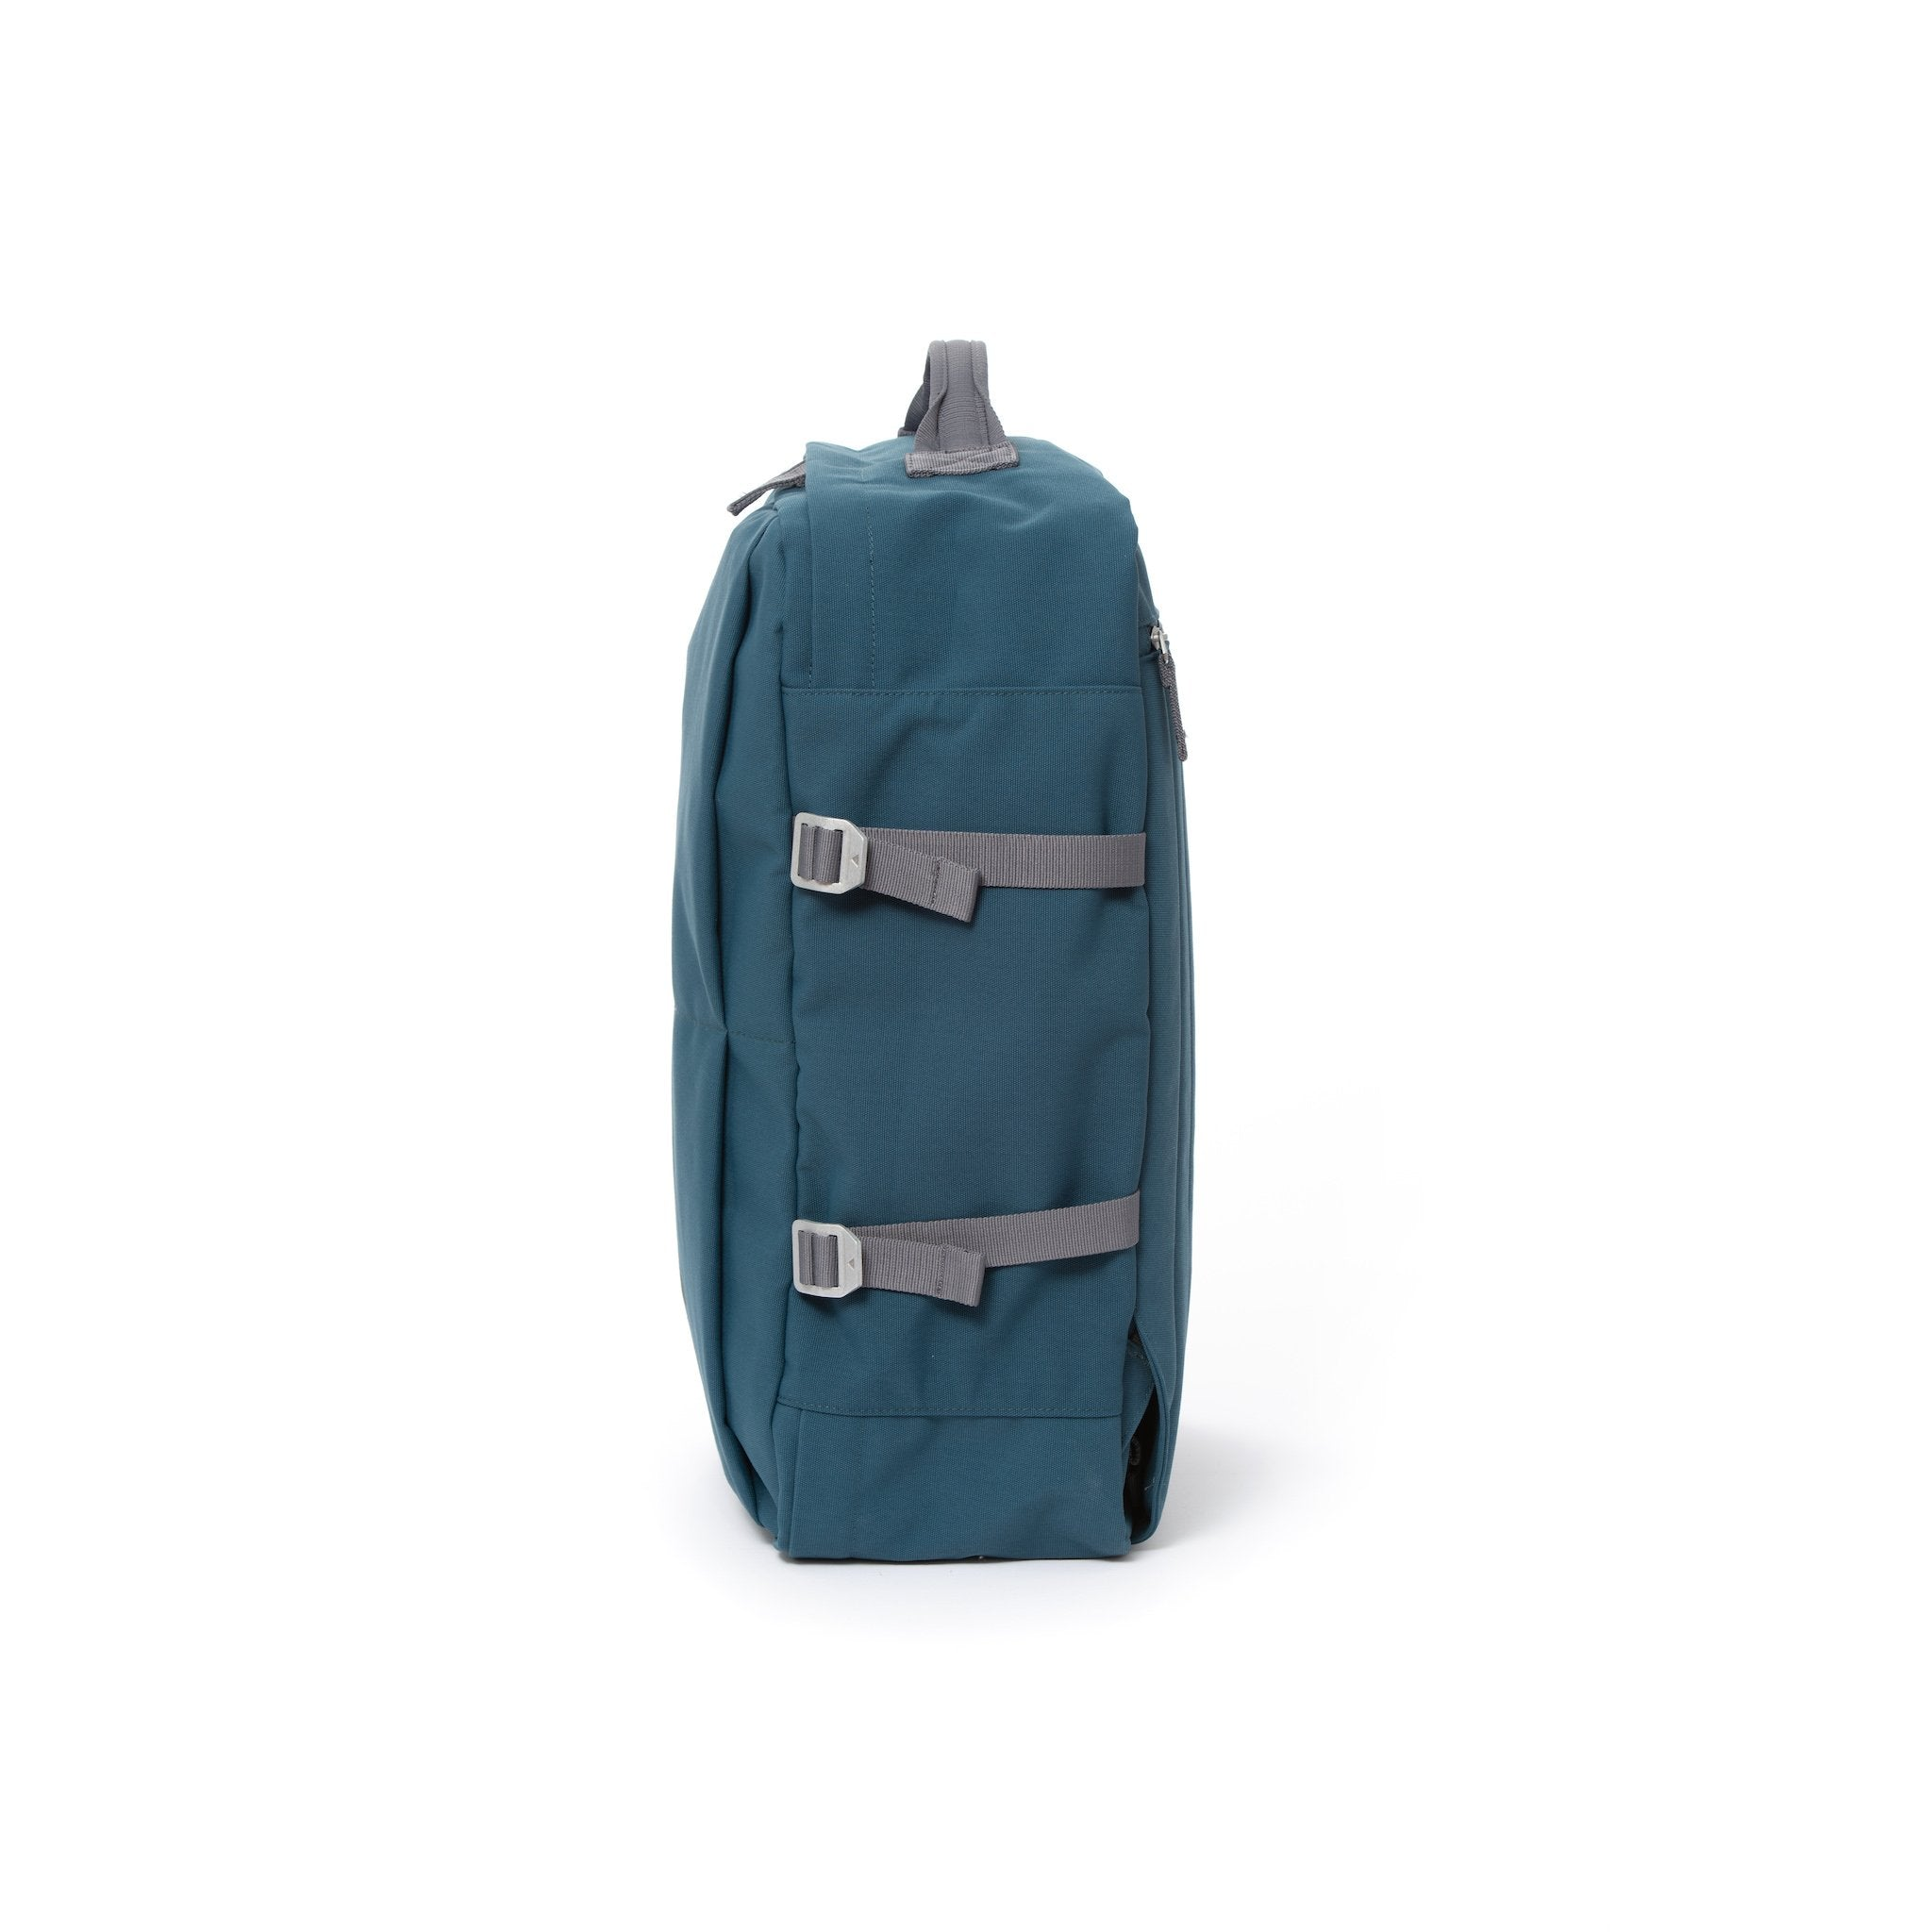 Blue waterproof canvas travel backpack with compression side straps.